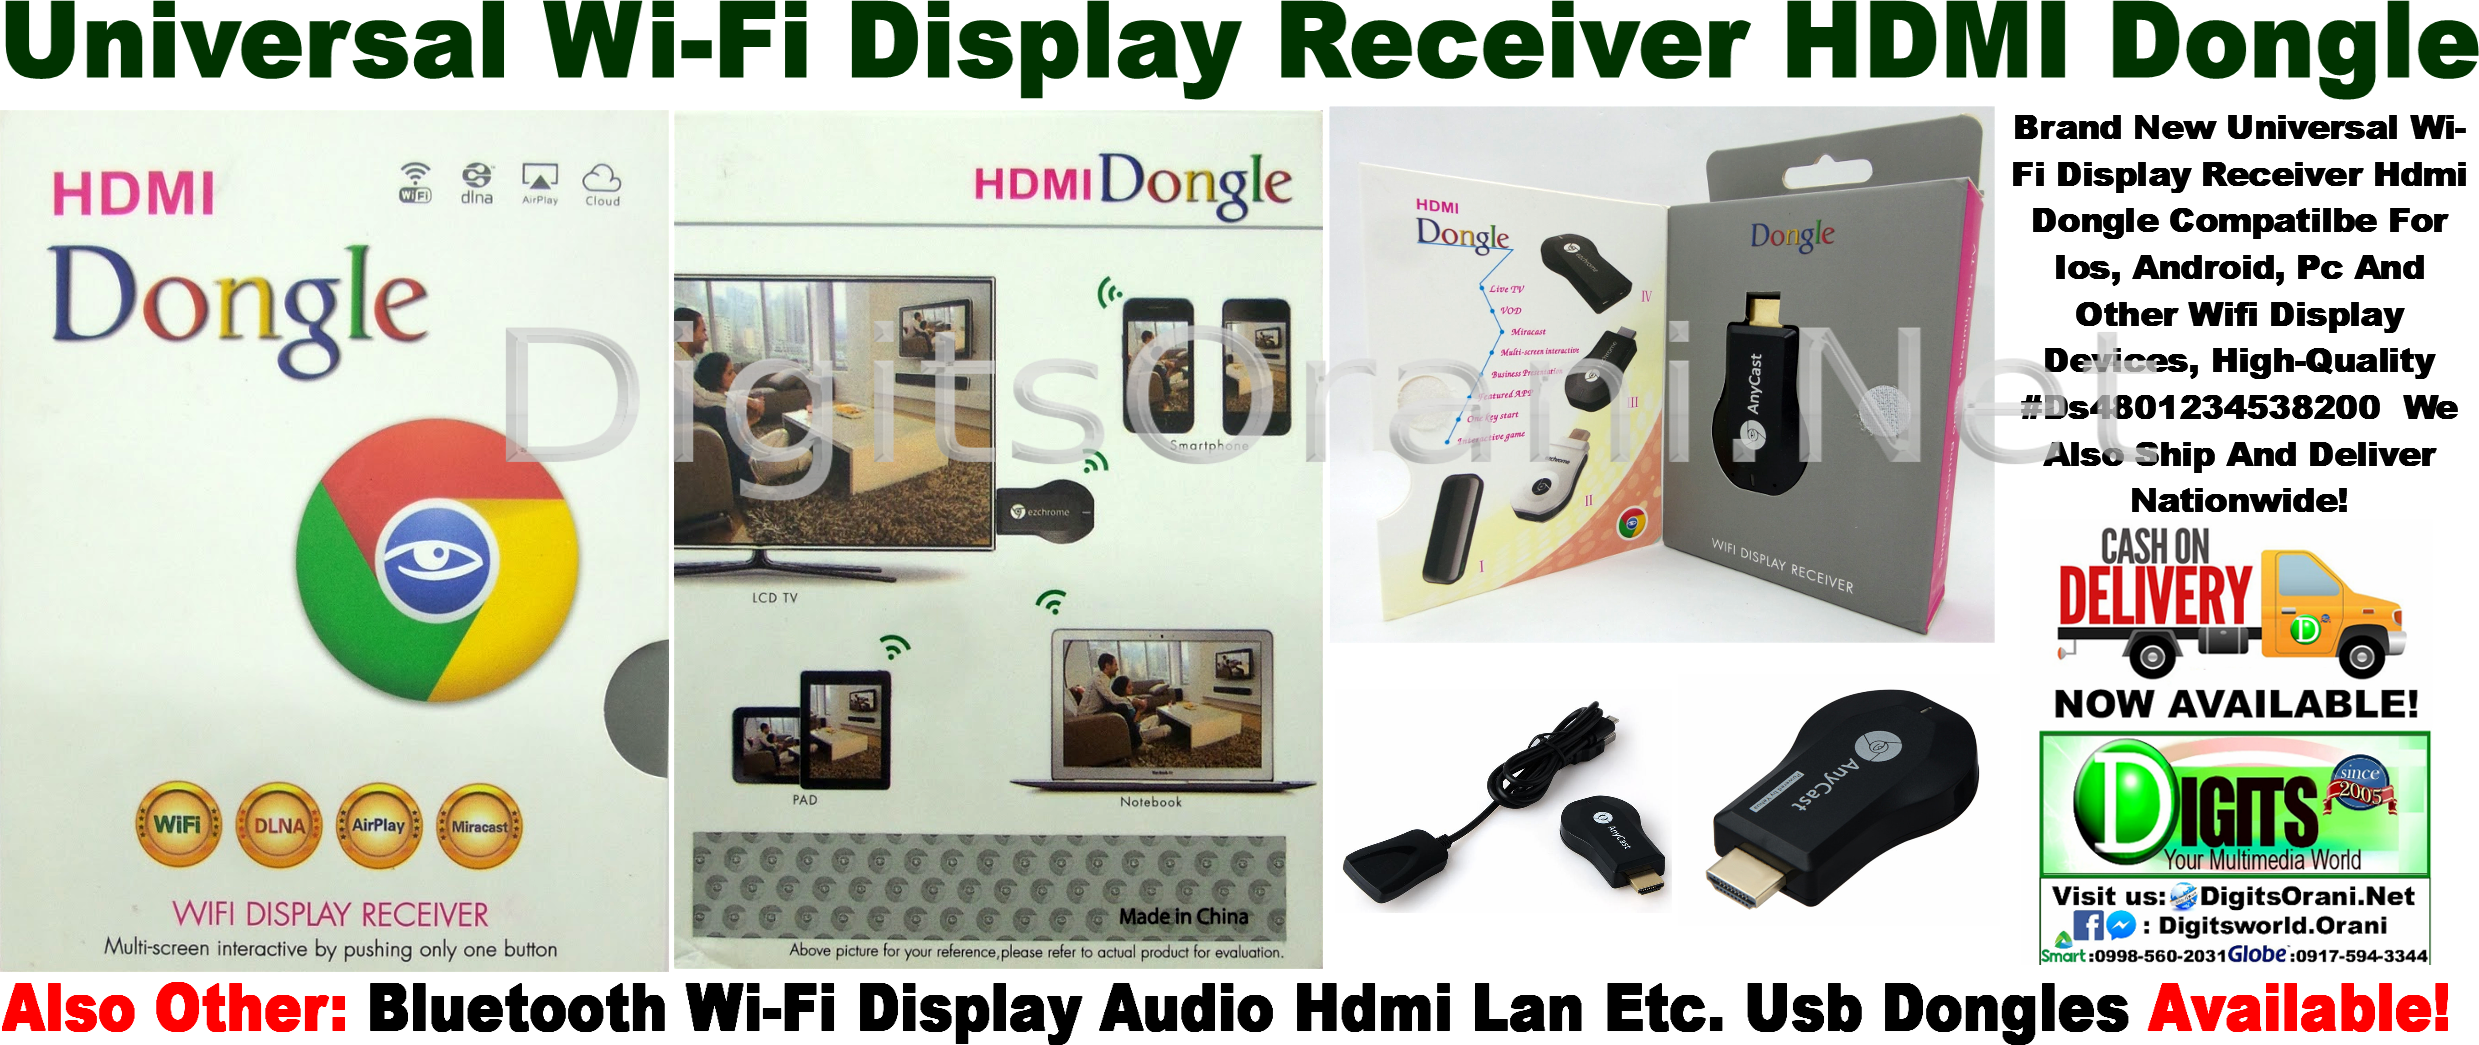 Universal Wi Fi Display Receiver Hdmi Dongle Compatilbe For Ios Anycast Wifi Touch To Zoom